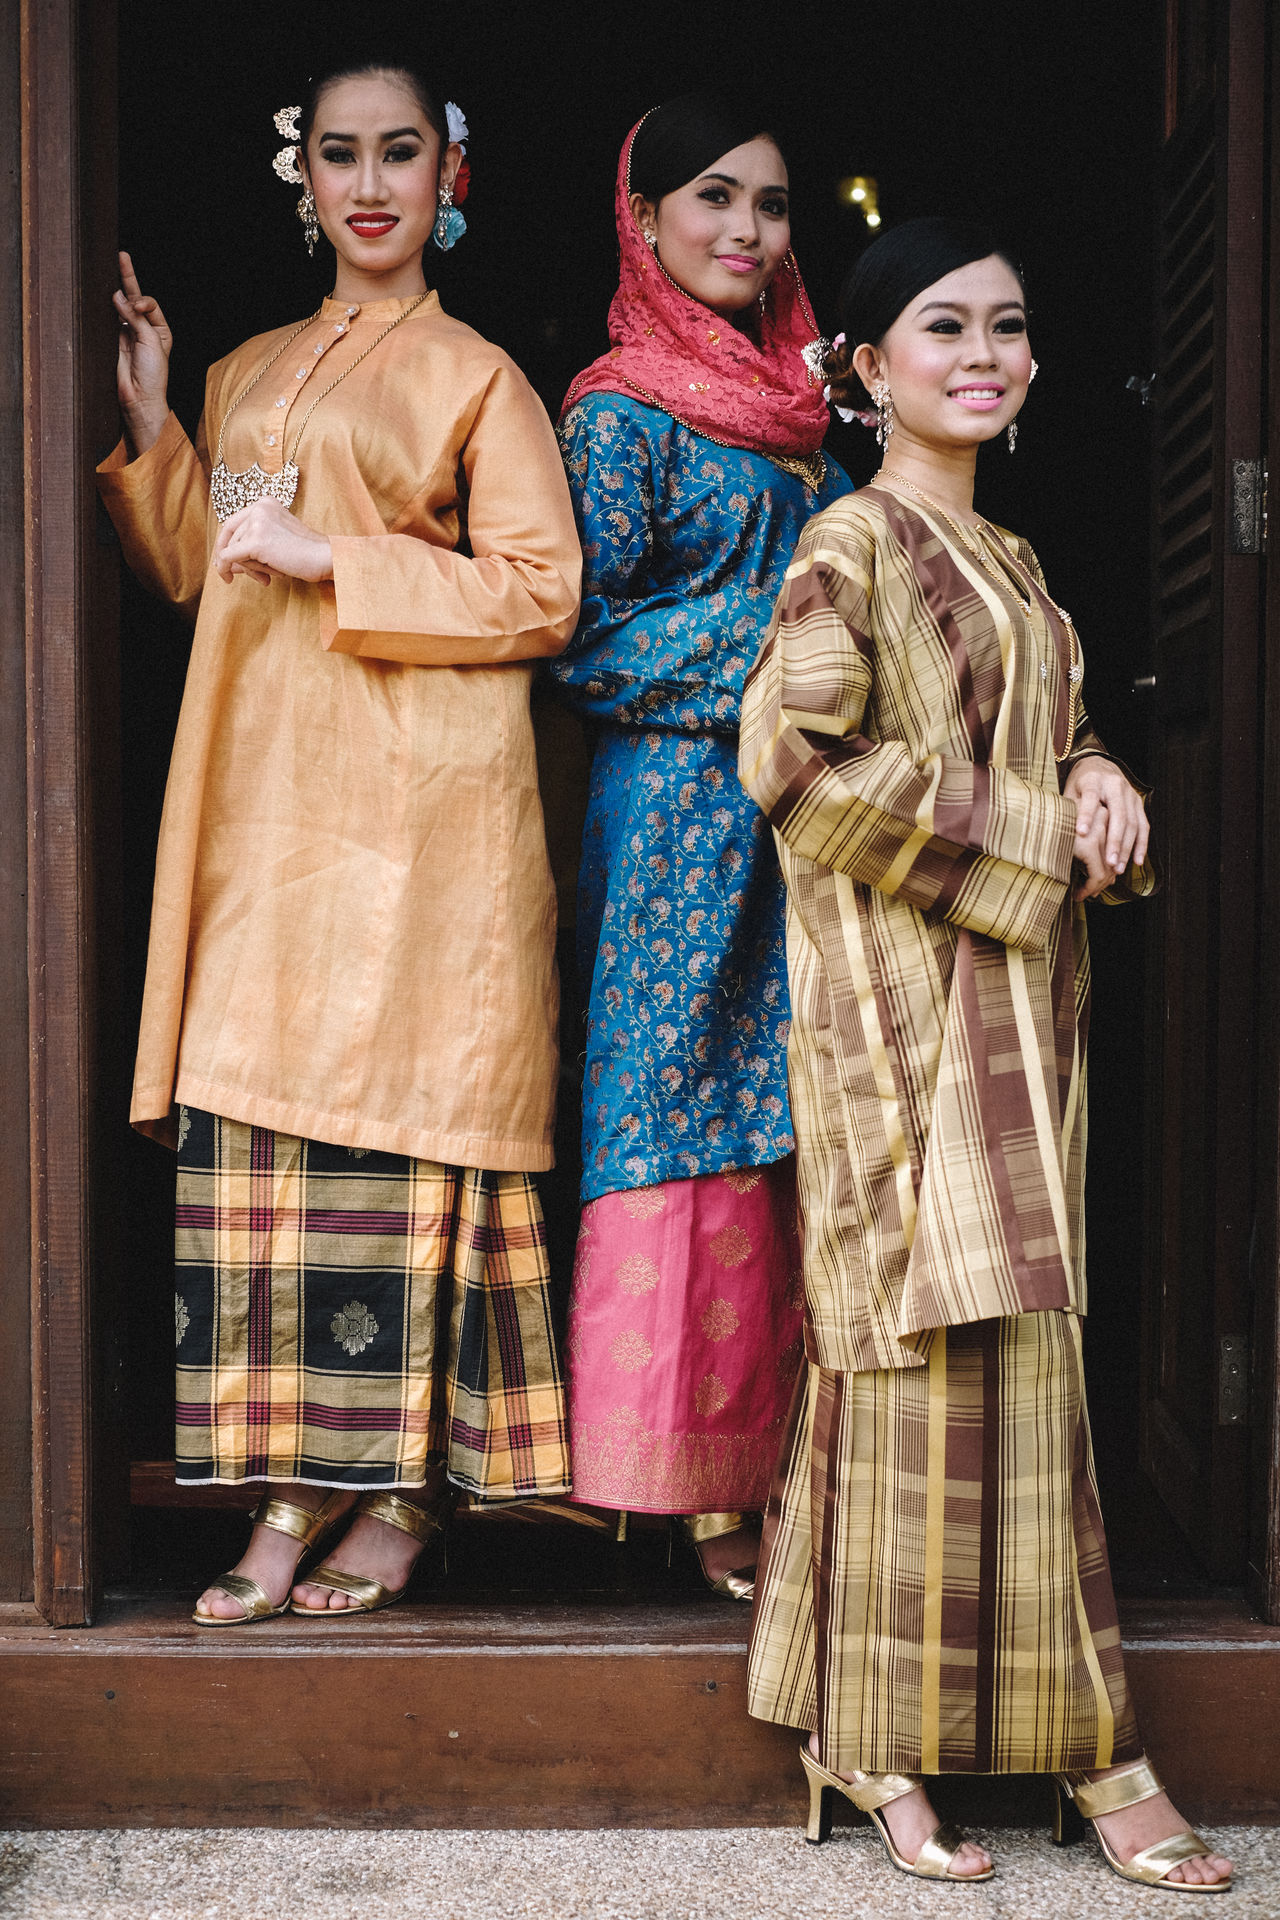 Adult Adults Only Day Fujifilm FUJIFILM X-T10 Fujifilm_xseries Malaysia Mature Adult Only Women Outdoors People Period Costume Royal Person Stage Costume Togetherness Traditional Traditional Clothing Traditional Costumes Women